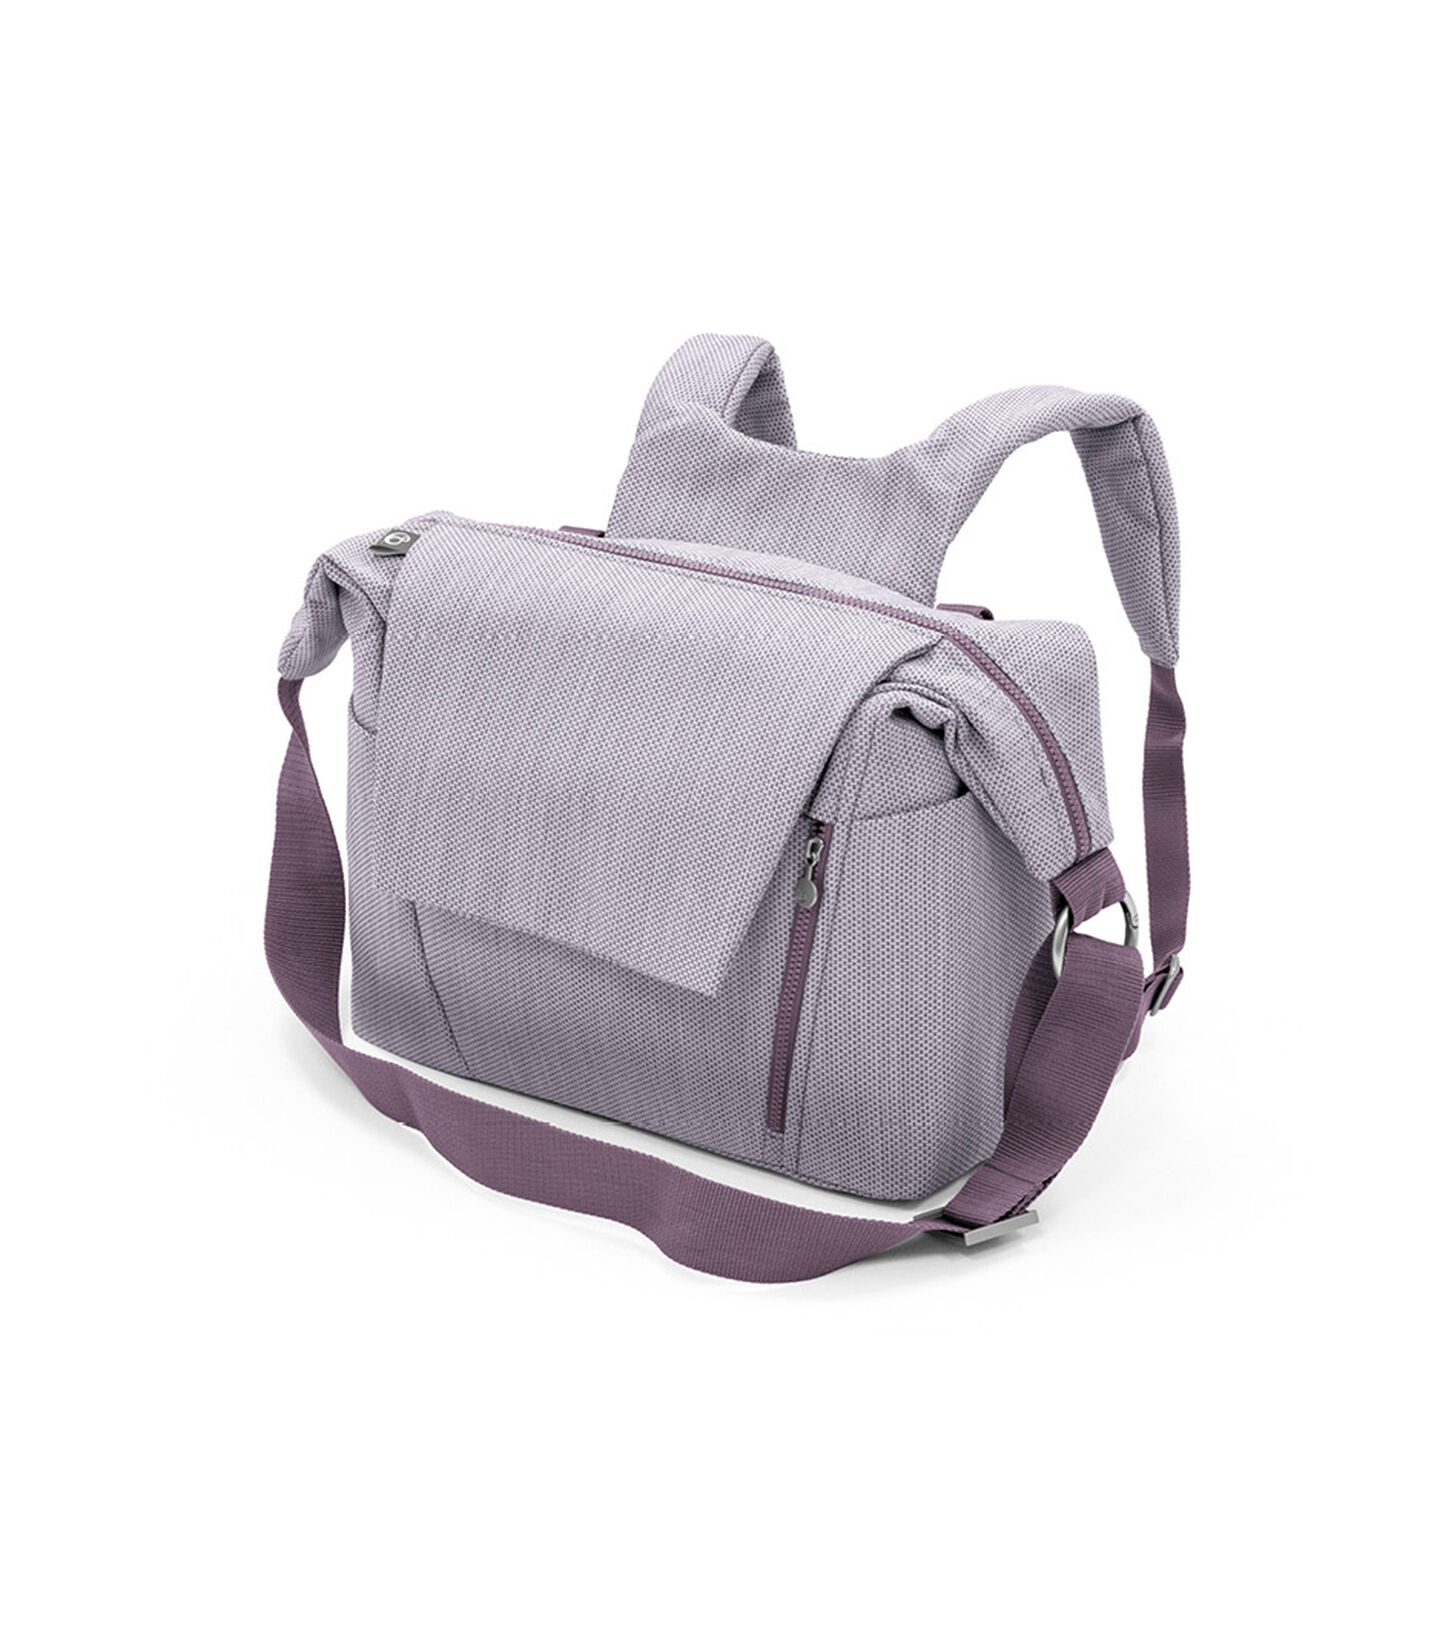 Stokke® Changing bag Brushed Lilac, Brushed Lilac, mainview view 2